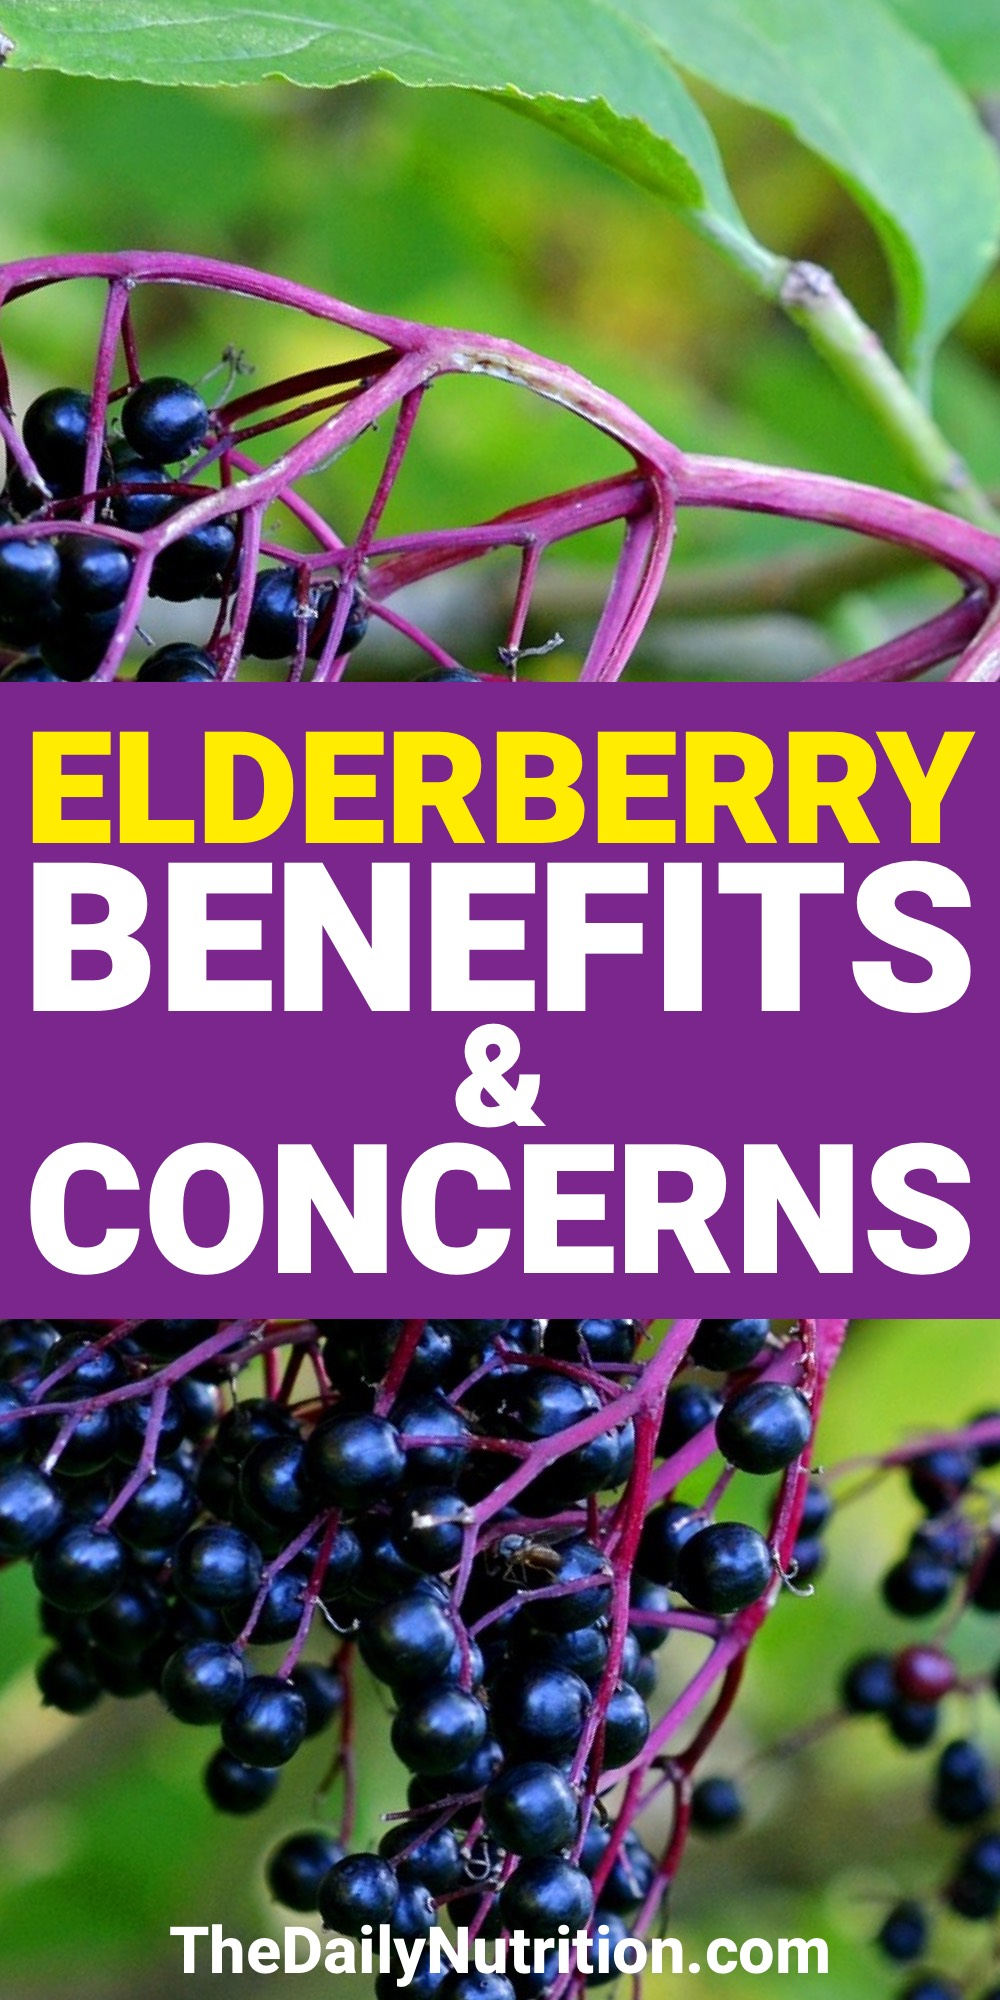 When you're sick, the elderberry can help make you feel better. Find out 5 other elderberry benefits here.